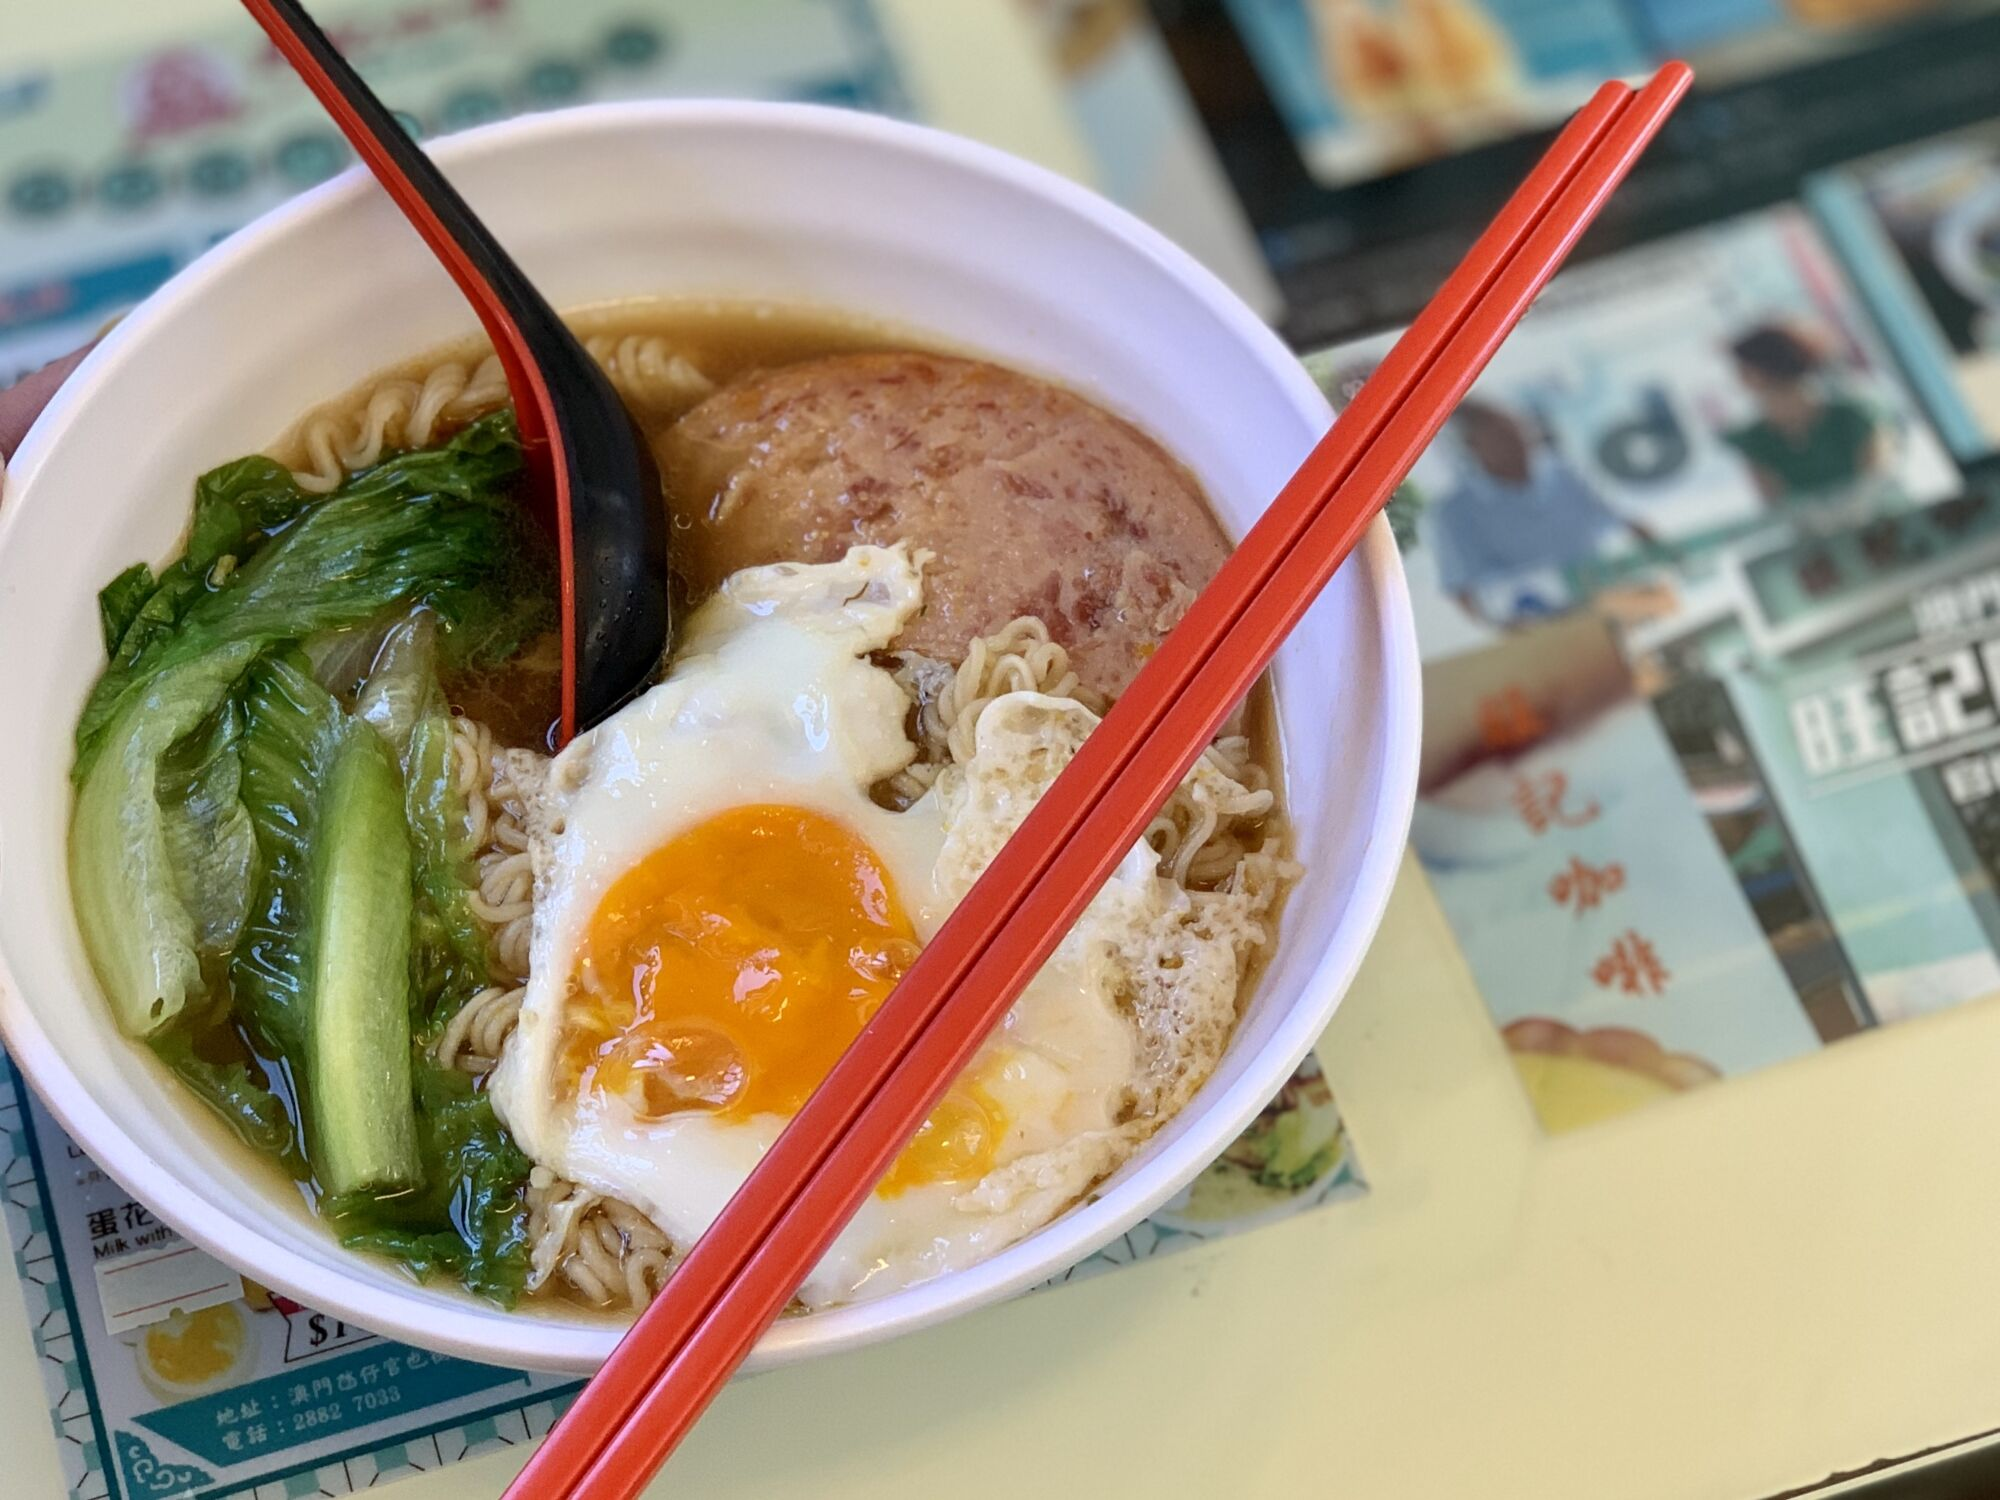 Instant noodles with egg and meat from Veng Kei Taipa Village Macau Lifestyle